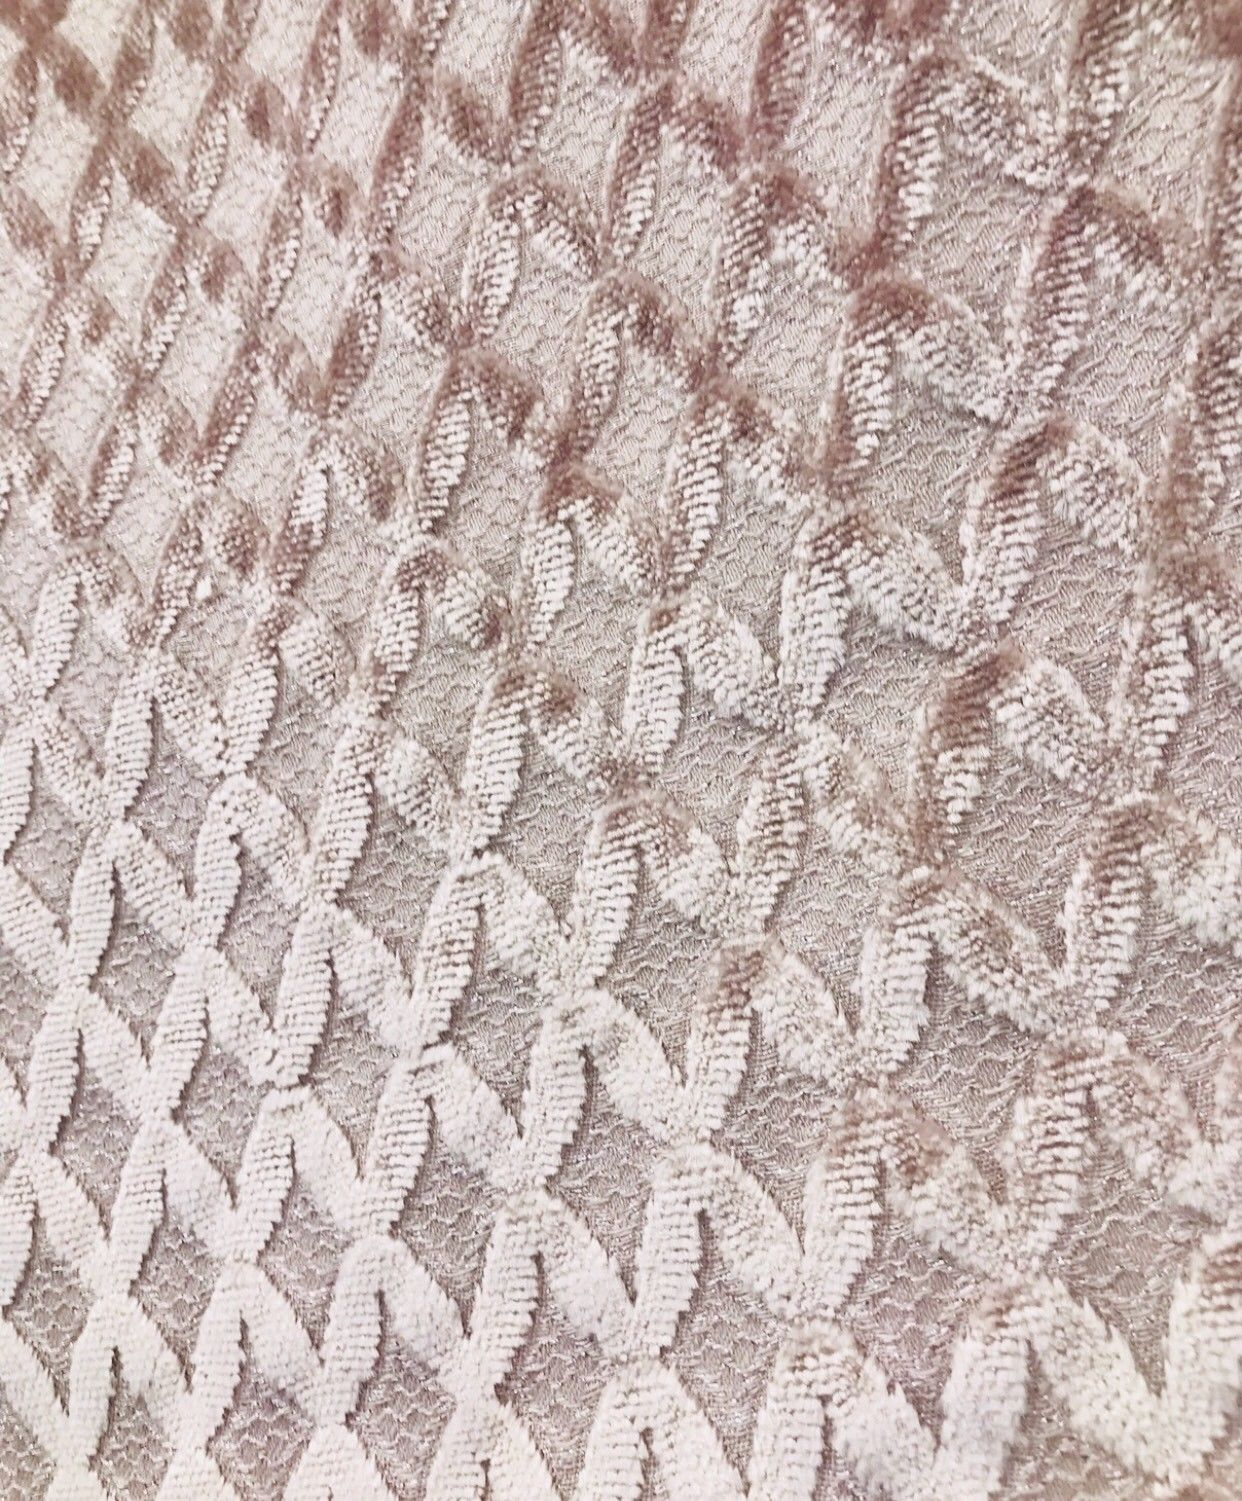 SWATCH- Made In Italy Designer Upholstery Burnout Chenille Velvet Fabric Pink - Fancy Styles Fabric Boutique